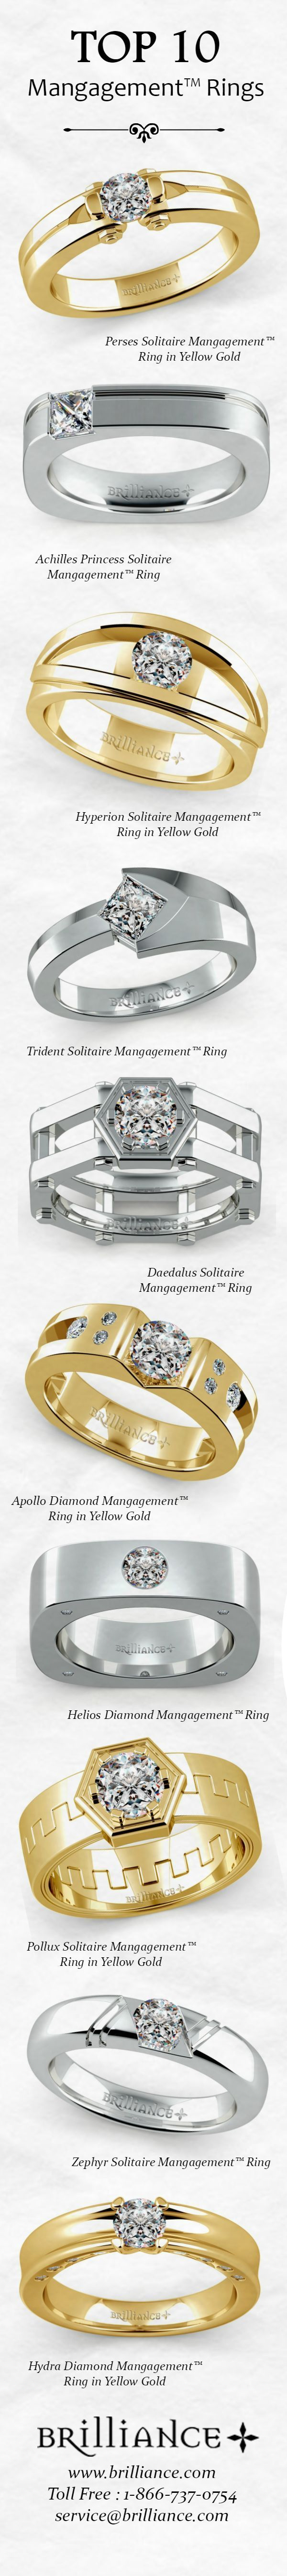 Here are the TOP 10  Mangagement™ Rings (Men's Engagement Rings) from www.Brilliance.com. Get in style and show true commitment with a unique men's engagement ring.